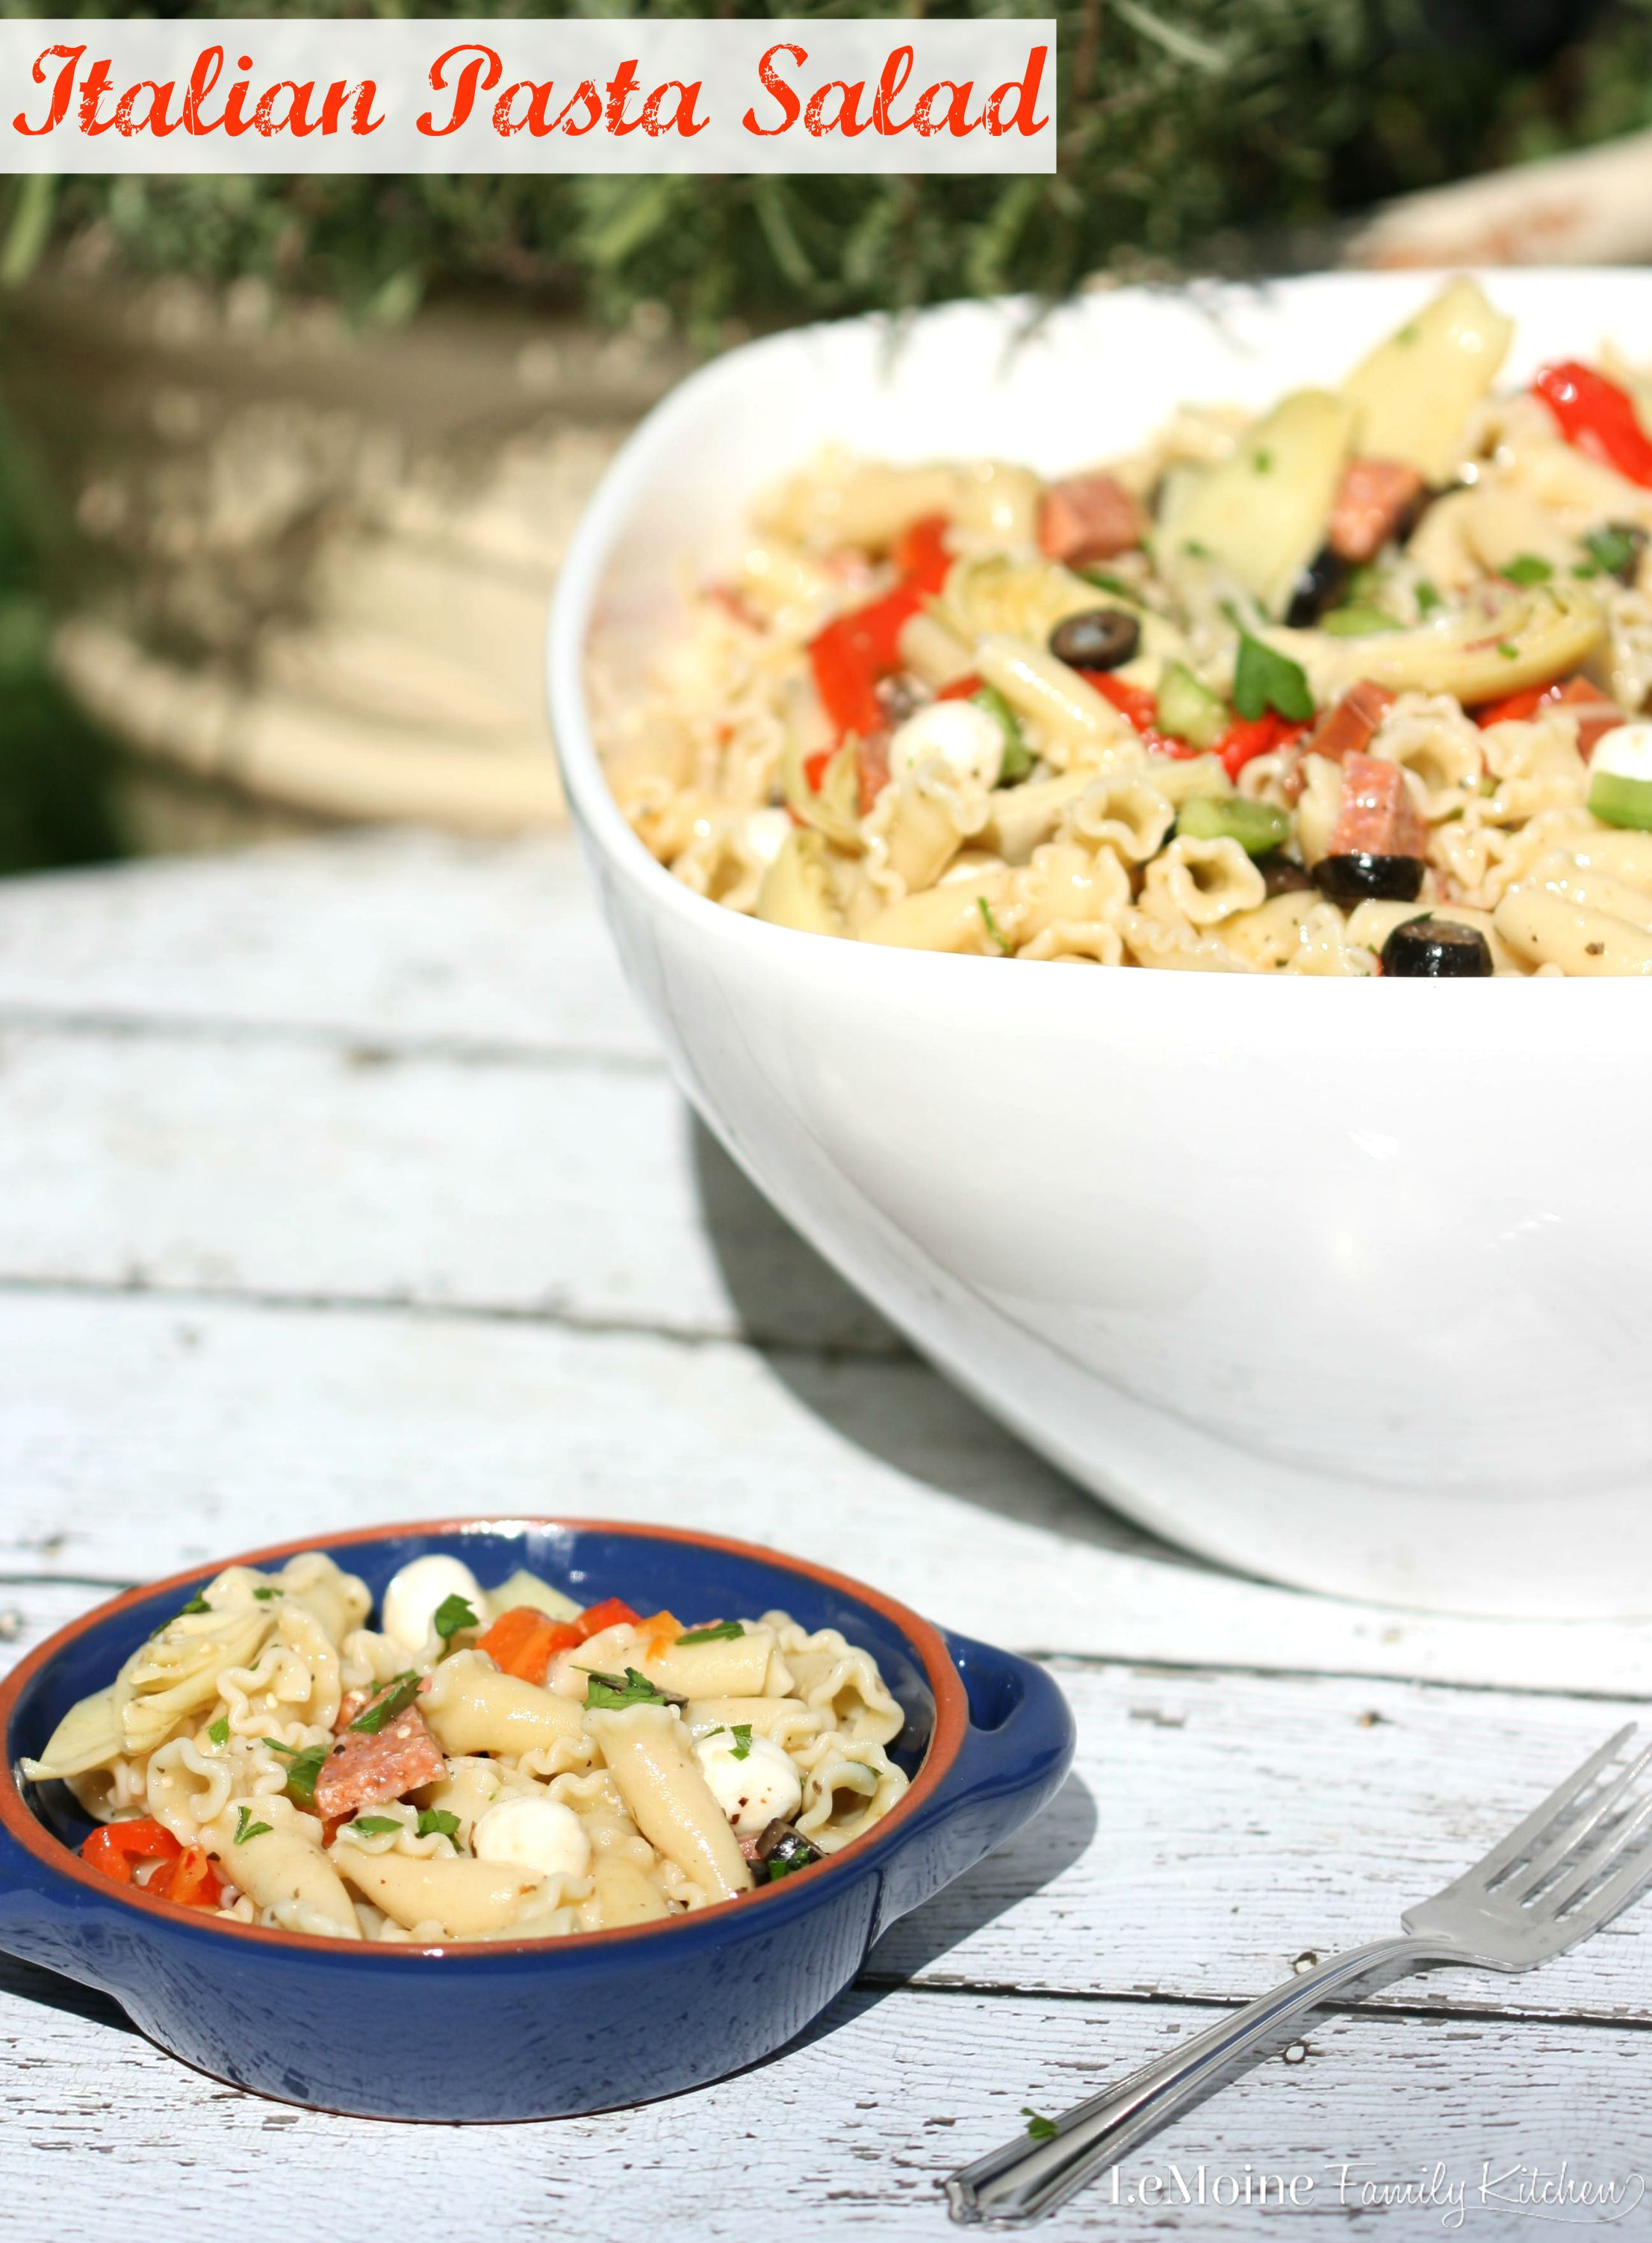 Italian Pasta Salad | LeMoine Family Kitchen . A classic side dish packed with flavor and super simple to throw together. This is always a huge hit at BBQs.